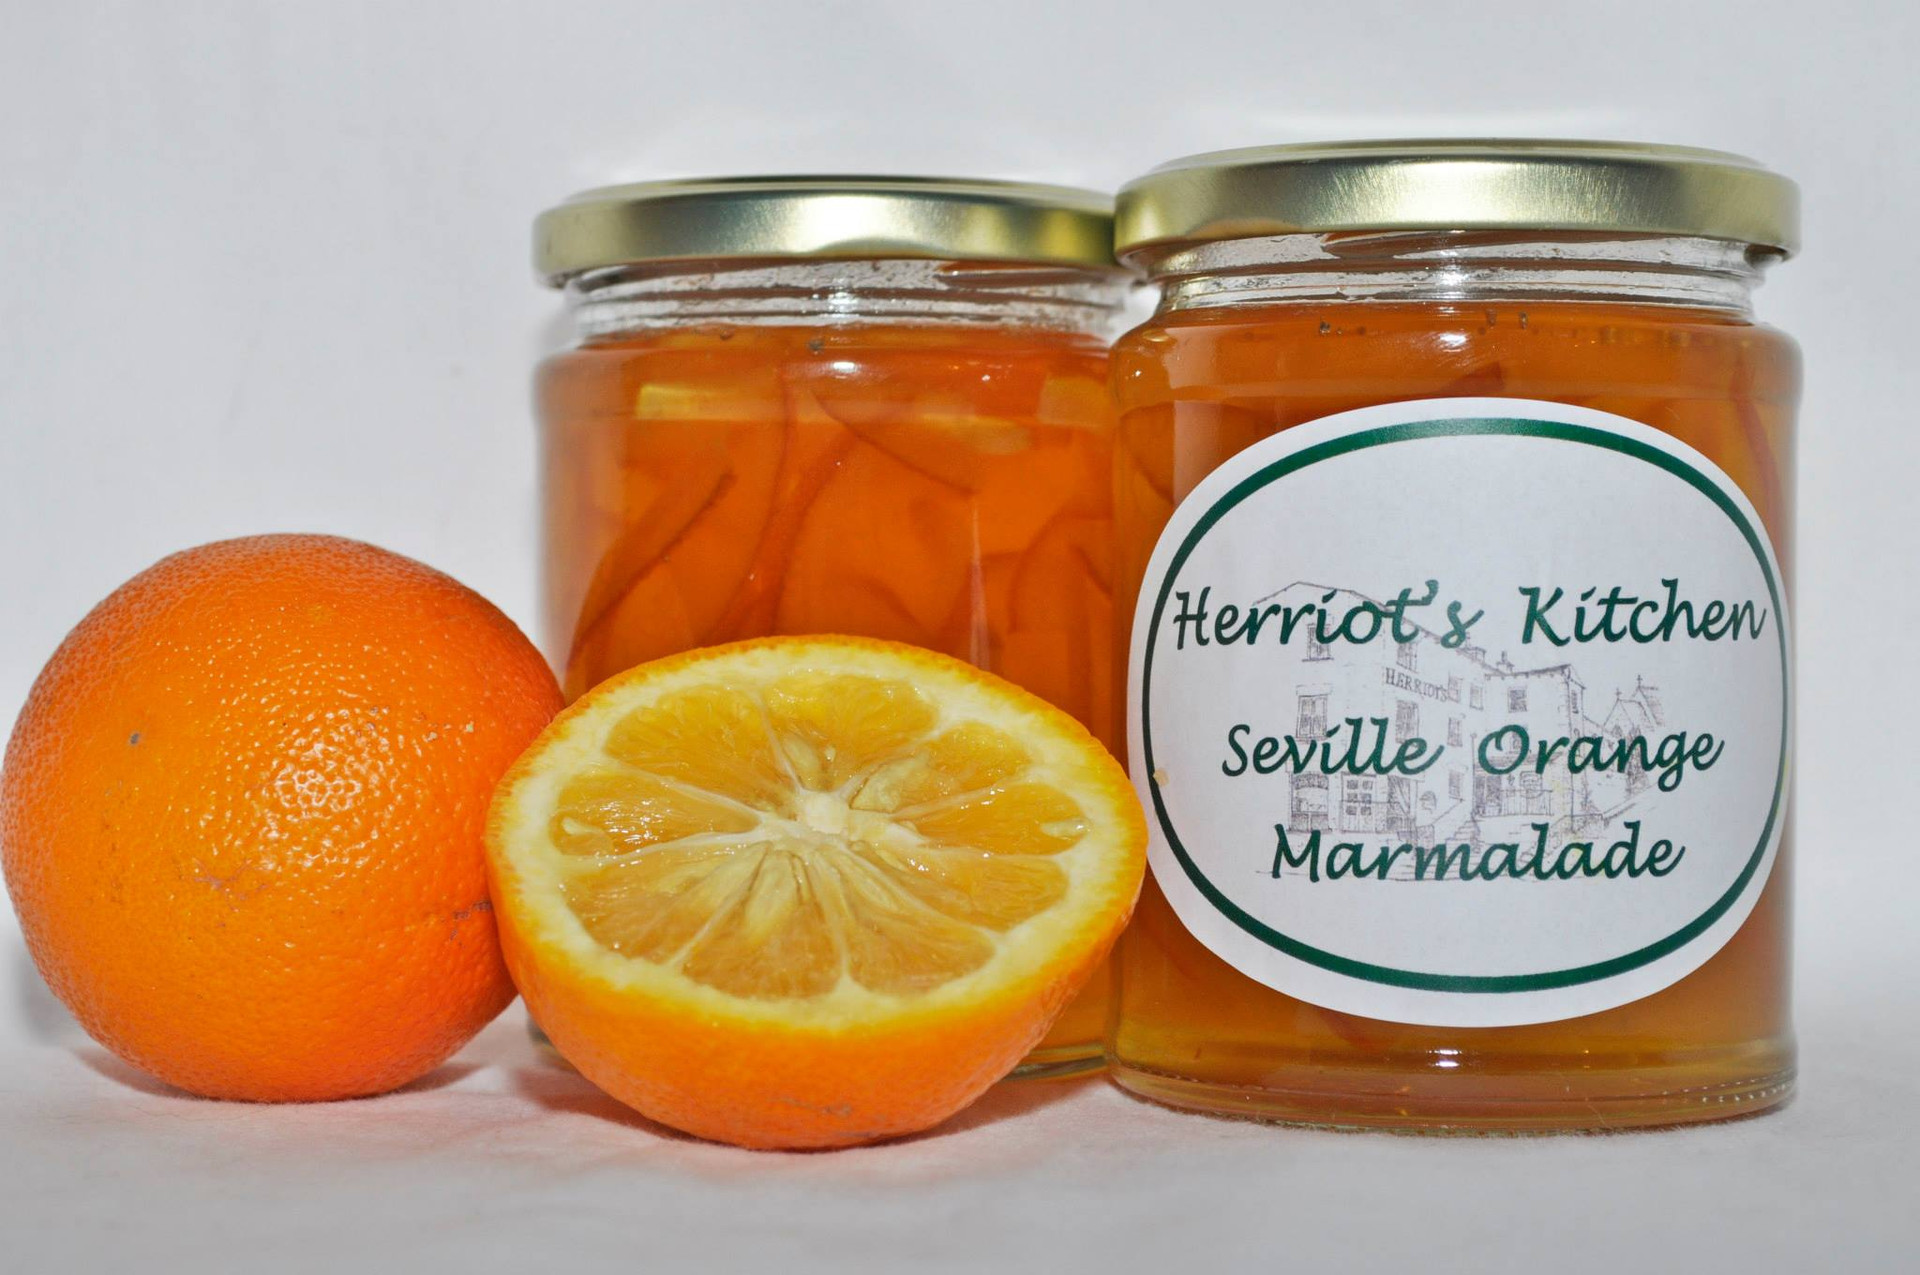 Herriot's Seville Orange Marmalade